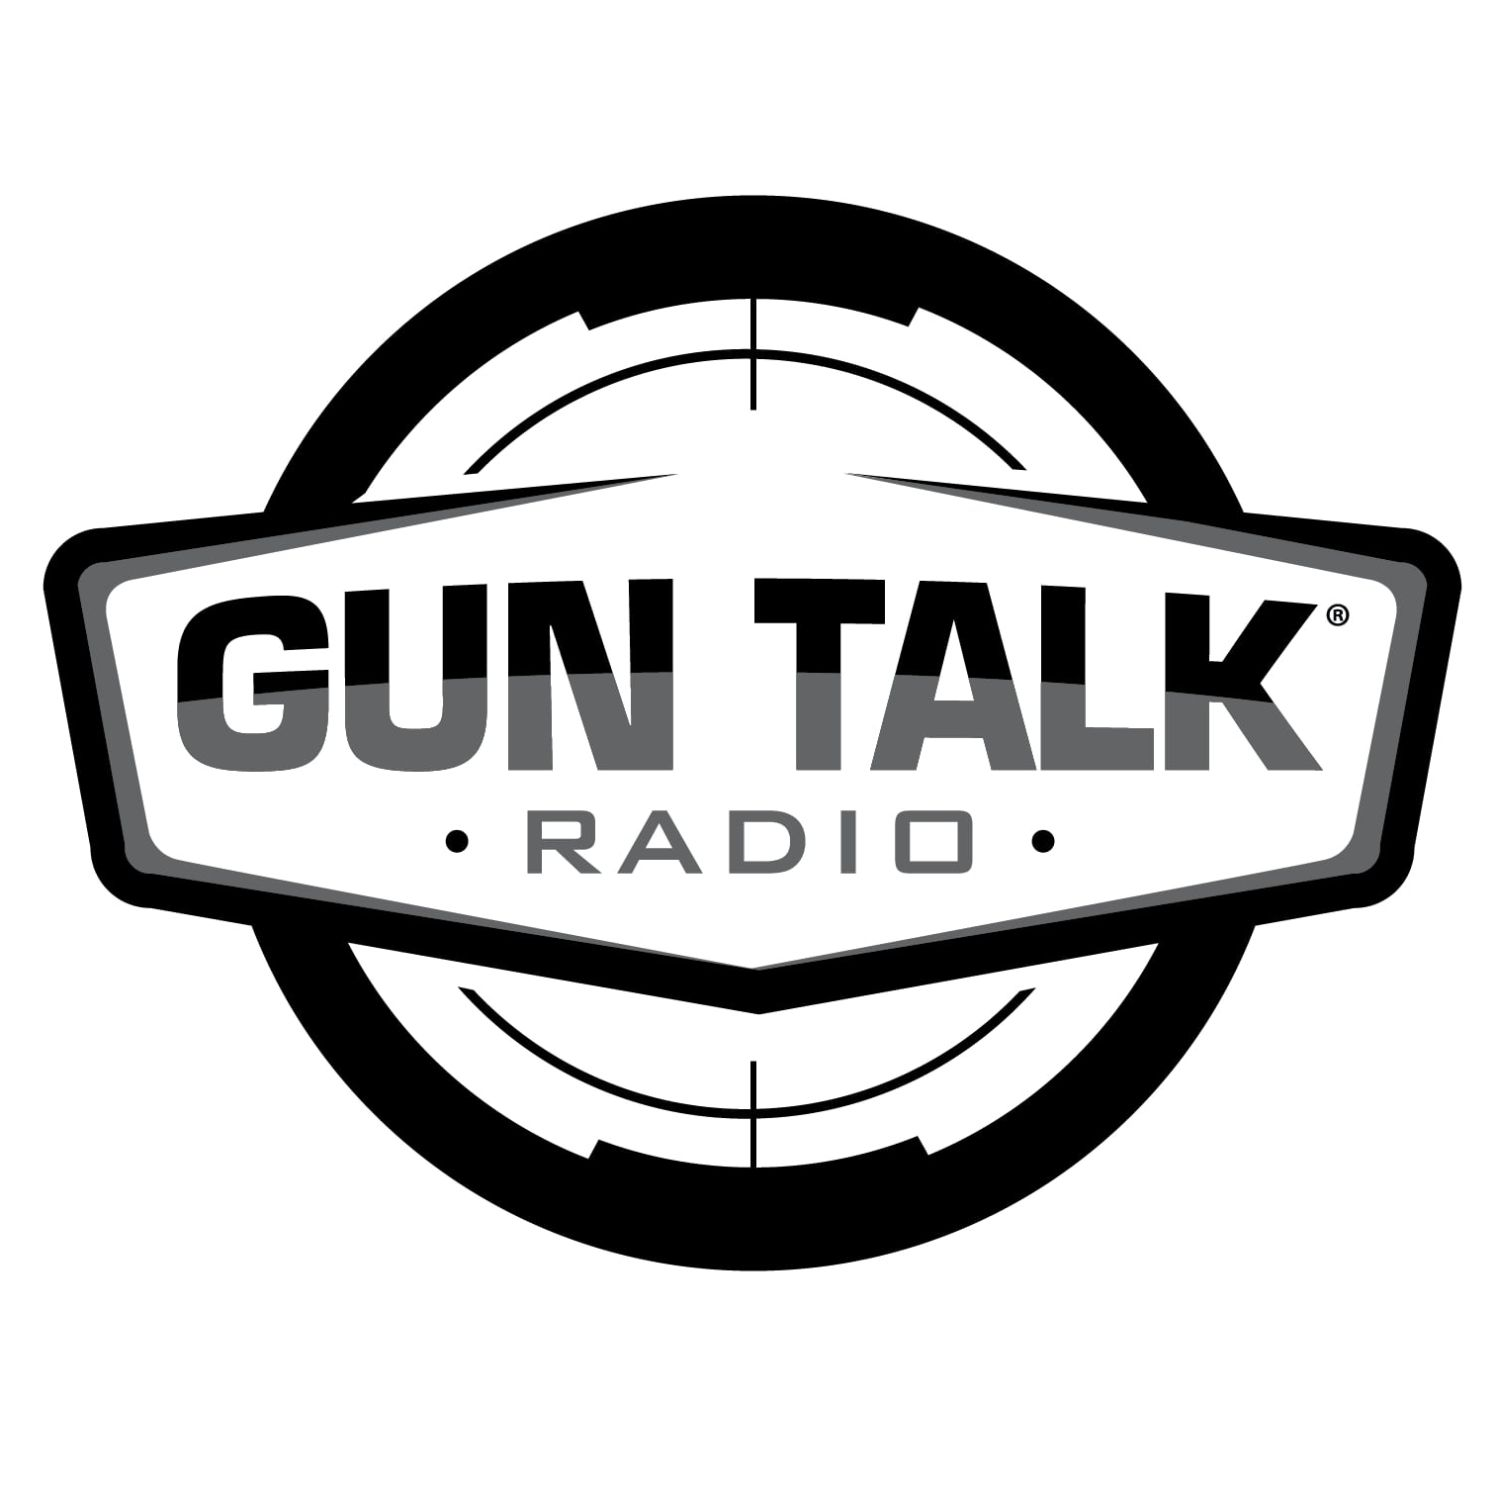 Artwork for Guntalk 2006-06-25 Part A